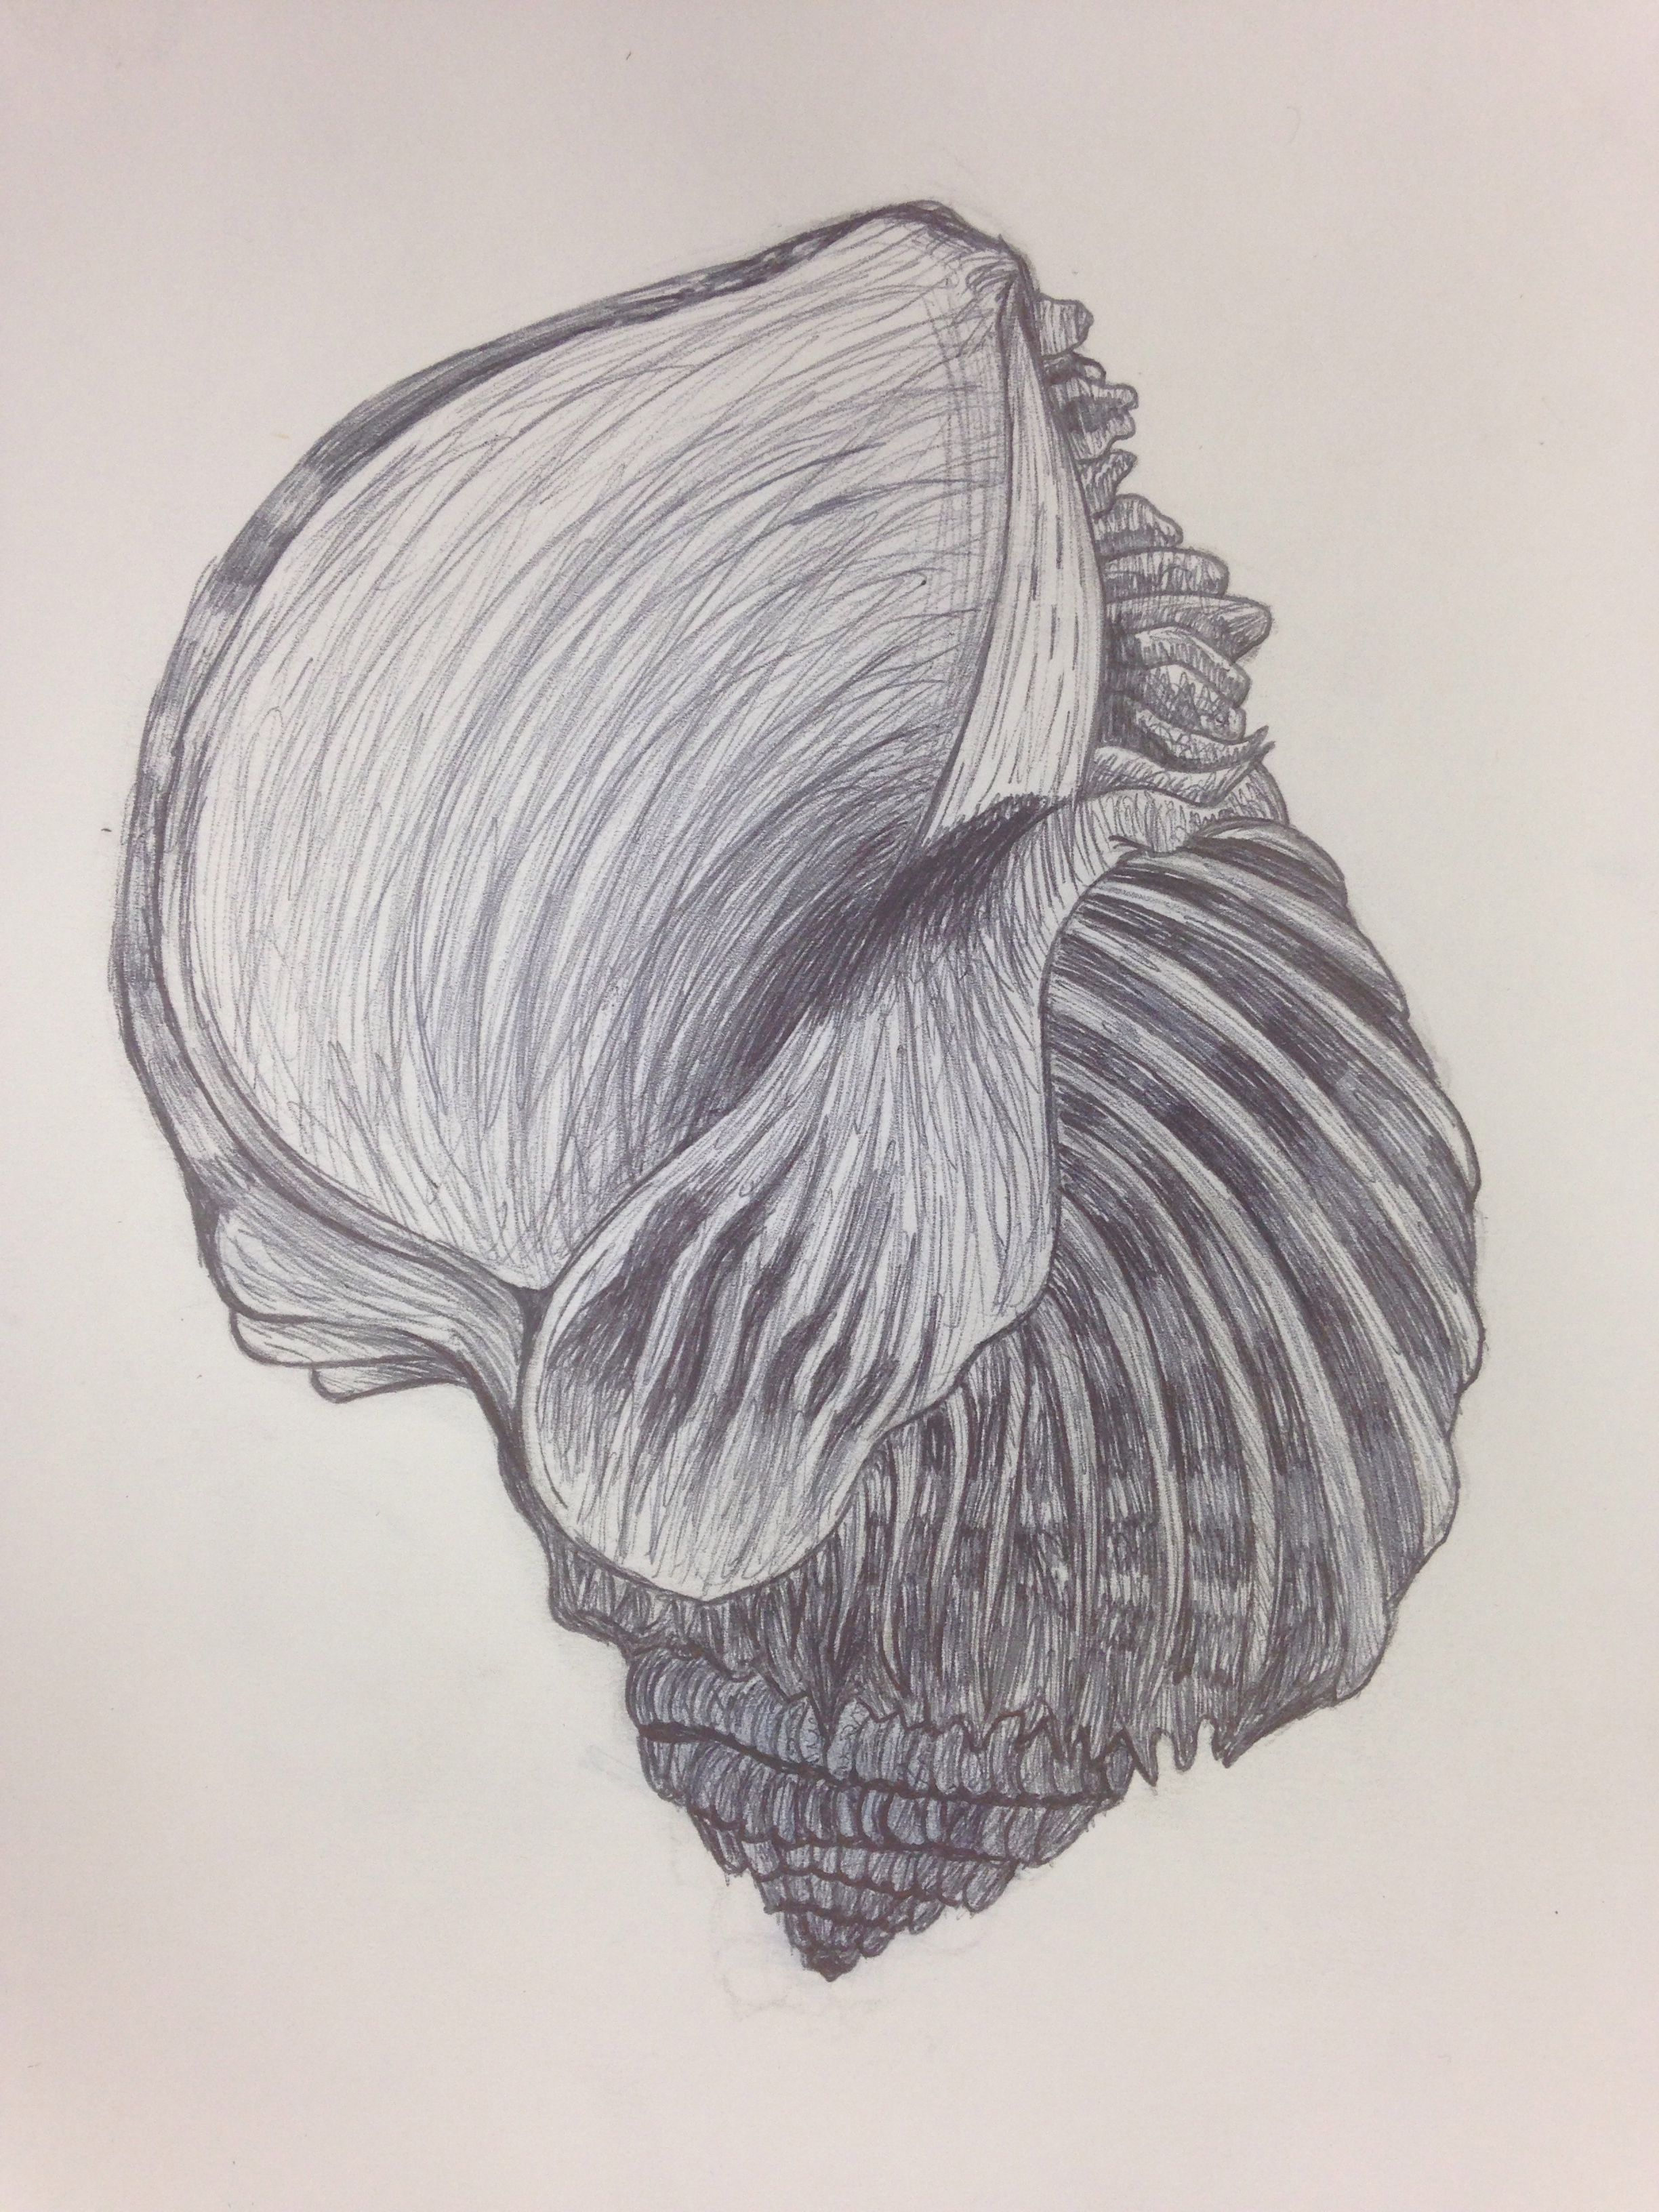 Shell Biro Drawing Note The Curved Build Up Of Tone To